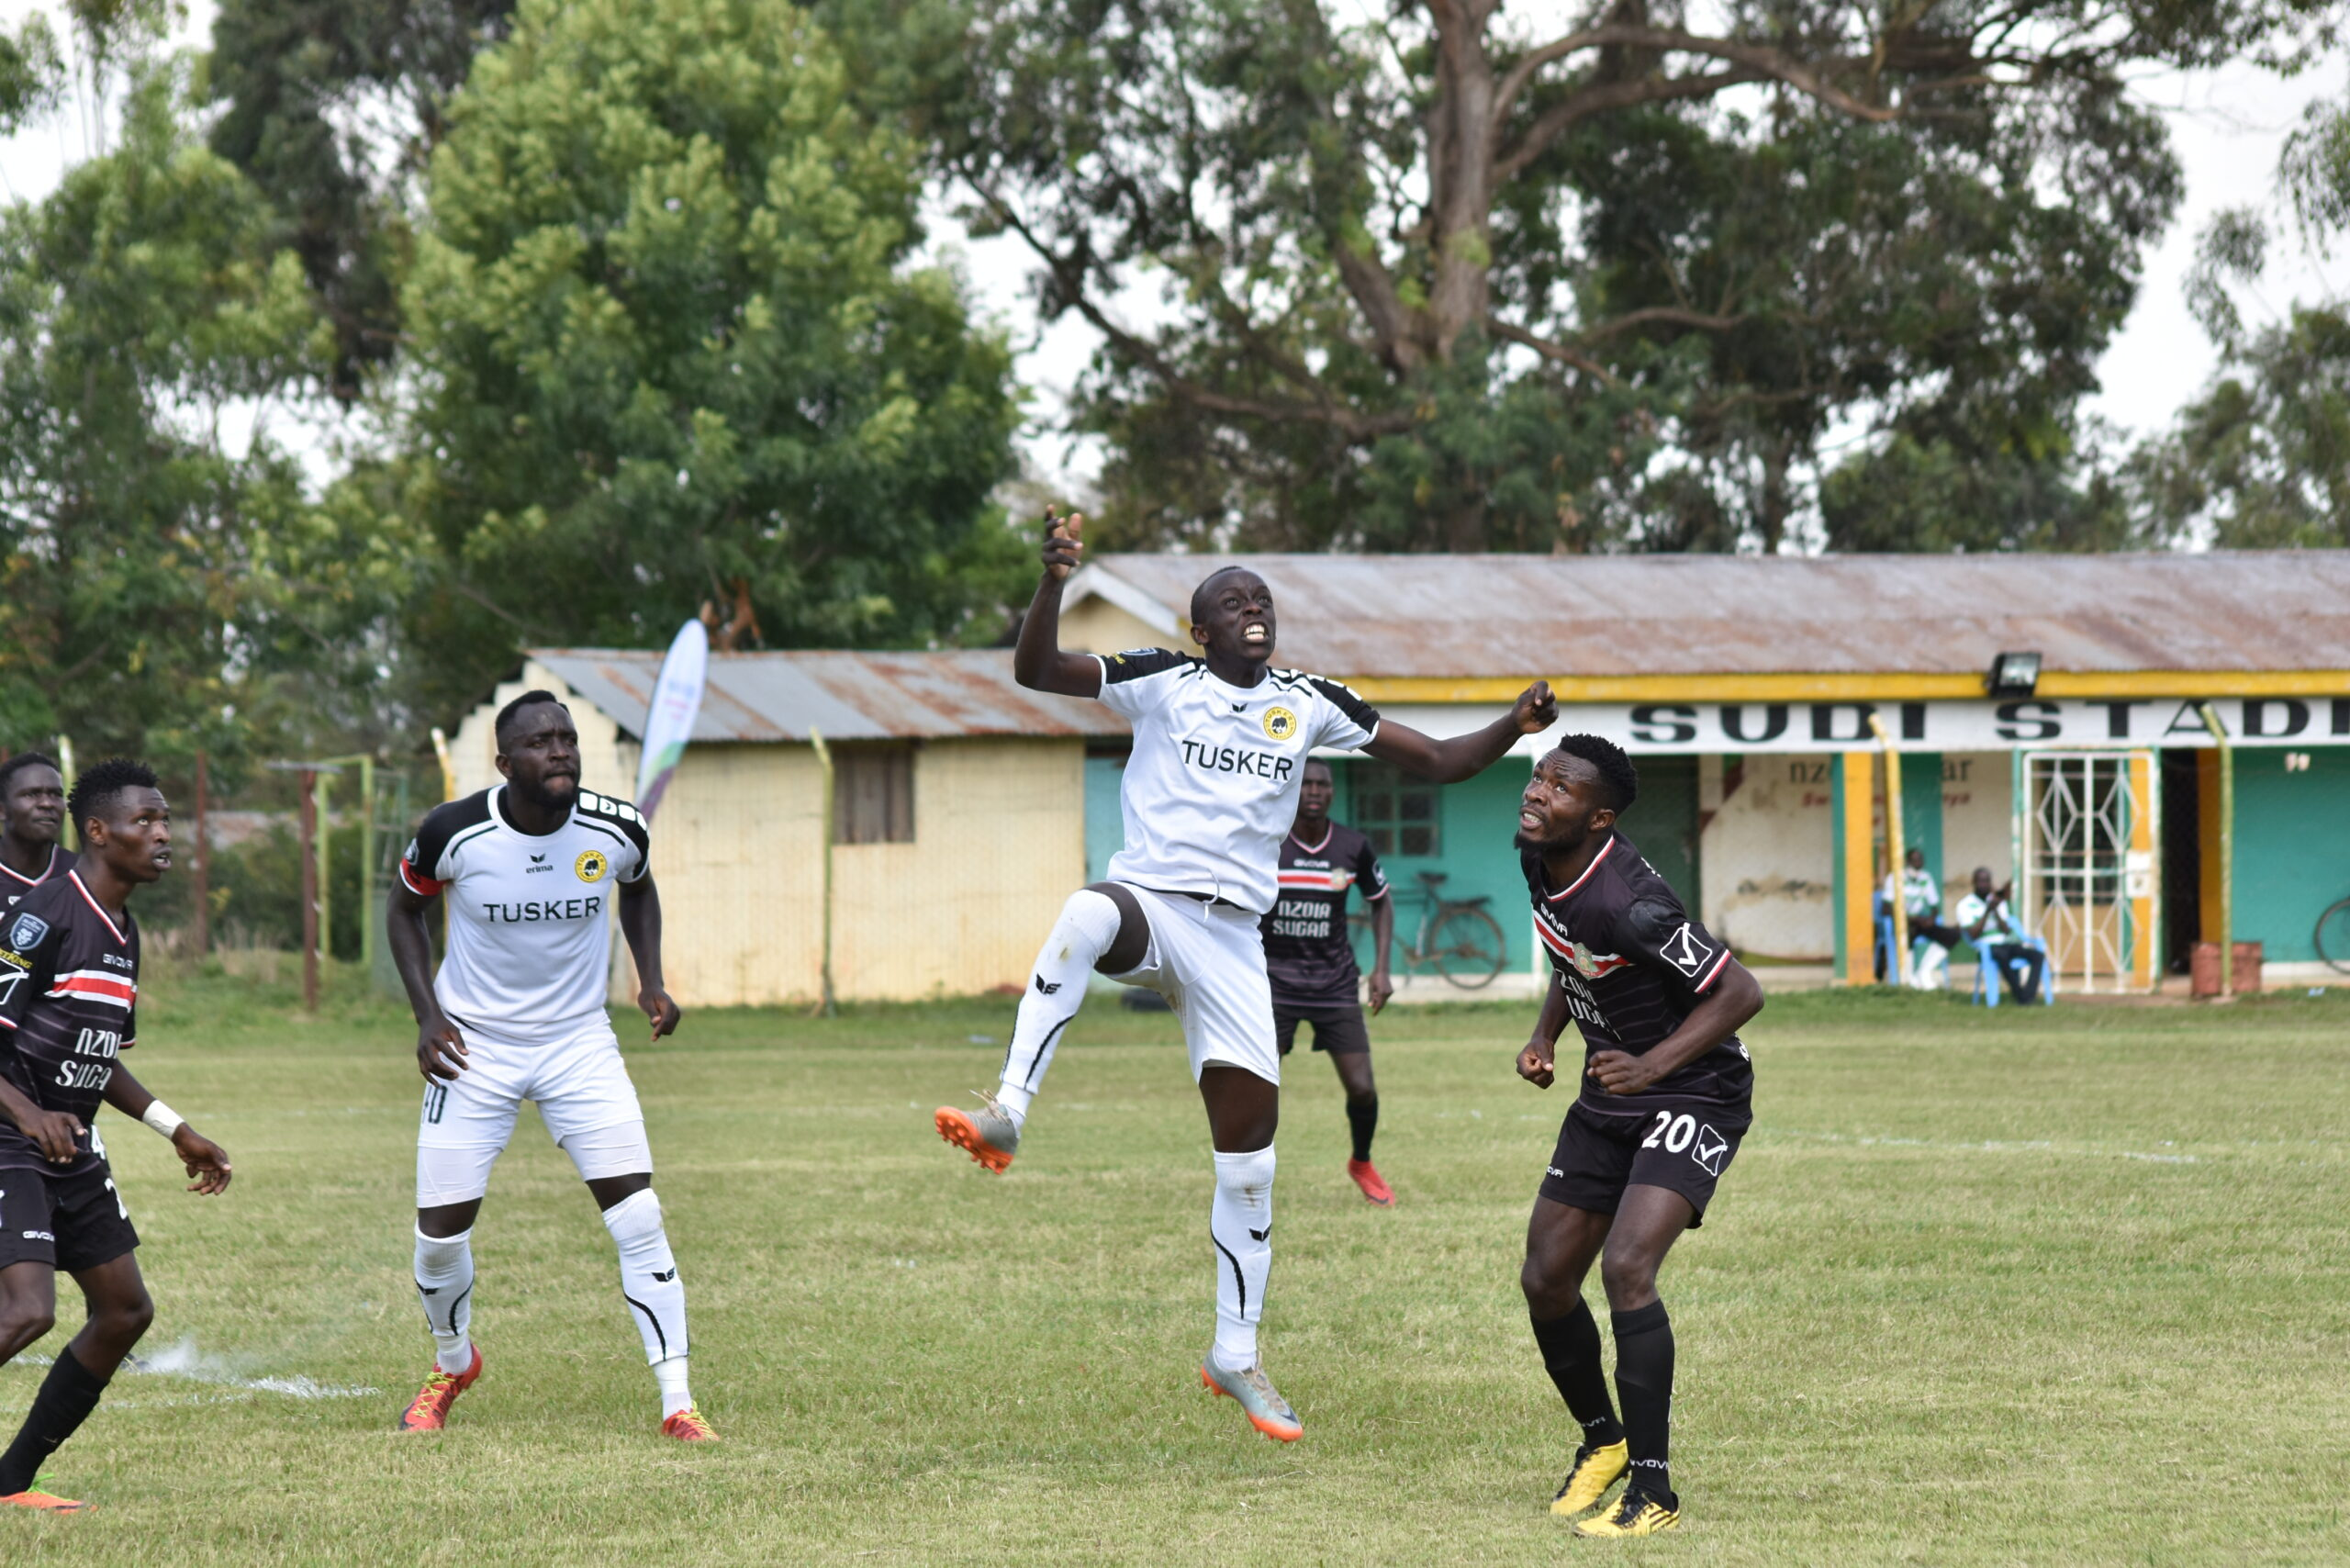 Leopards Hand Tusker the League as Mathare United Survive Relegation